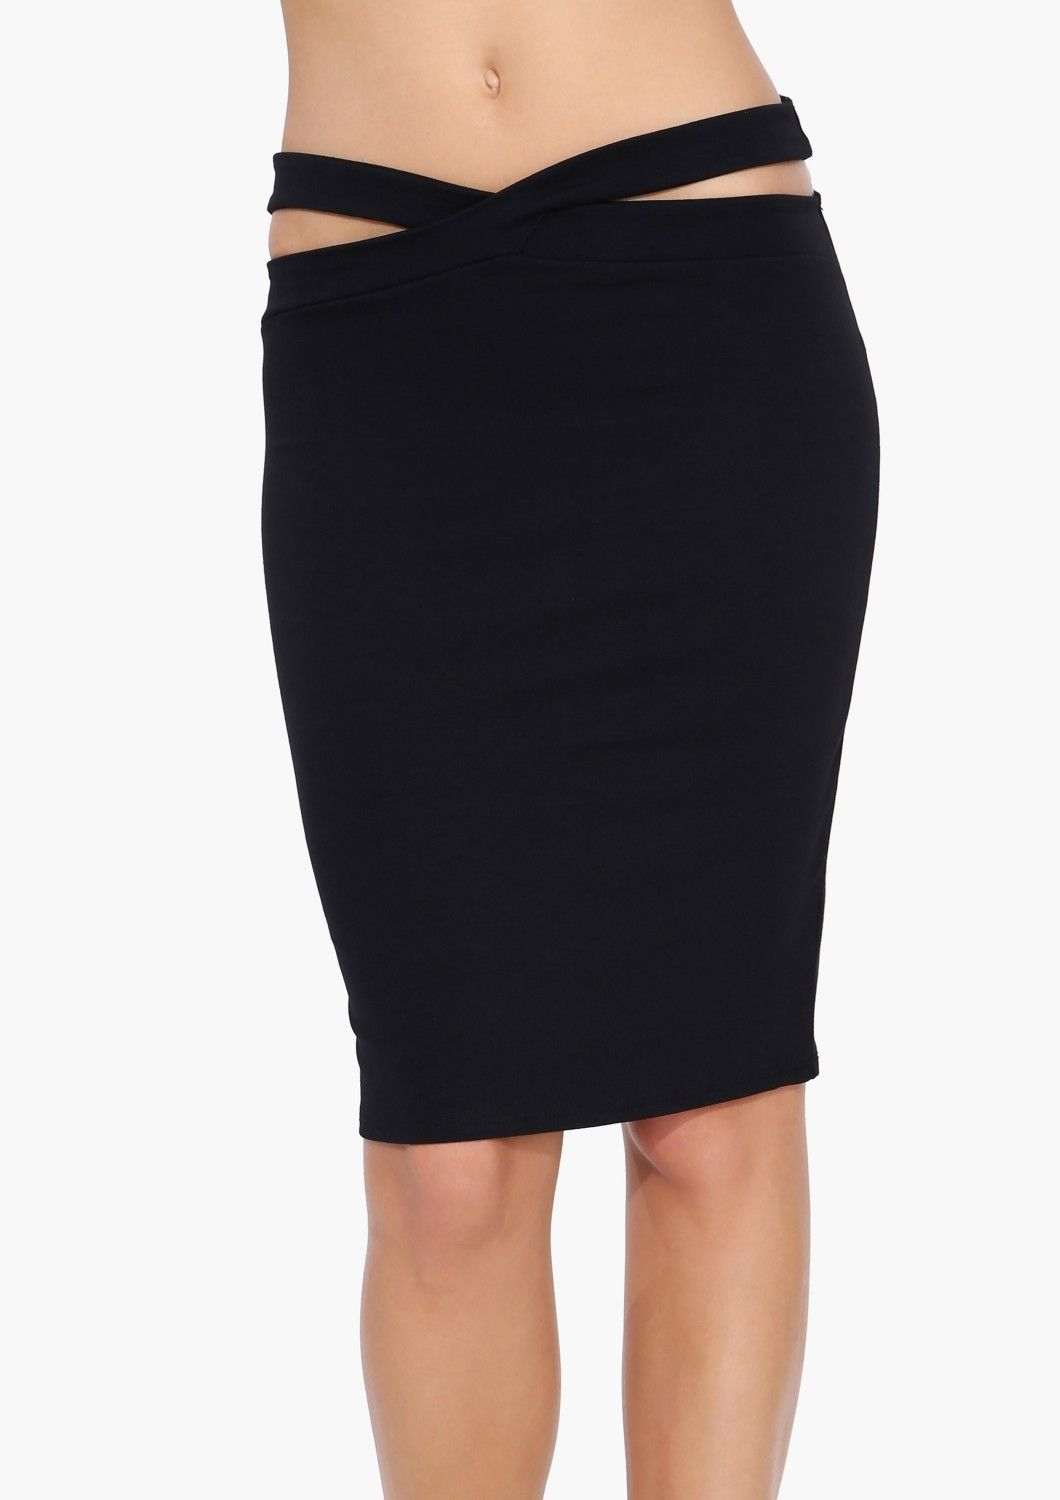 Criss Cross Pencil Skirt in Black   Necessary Clothing